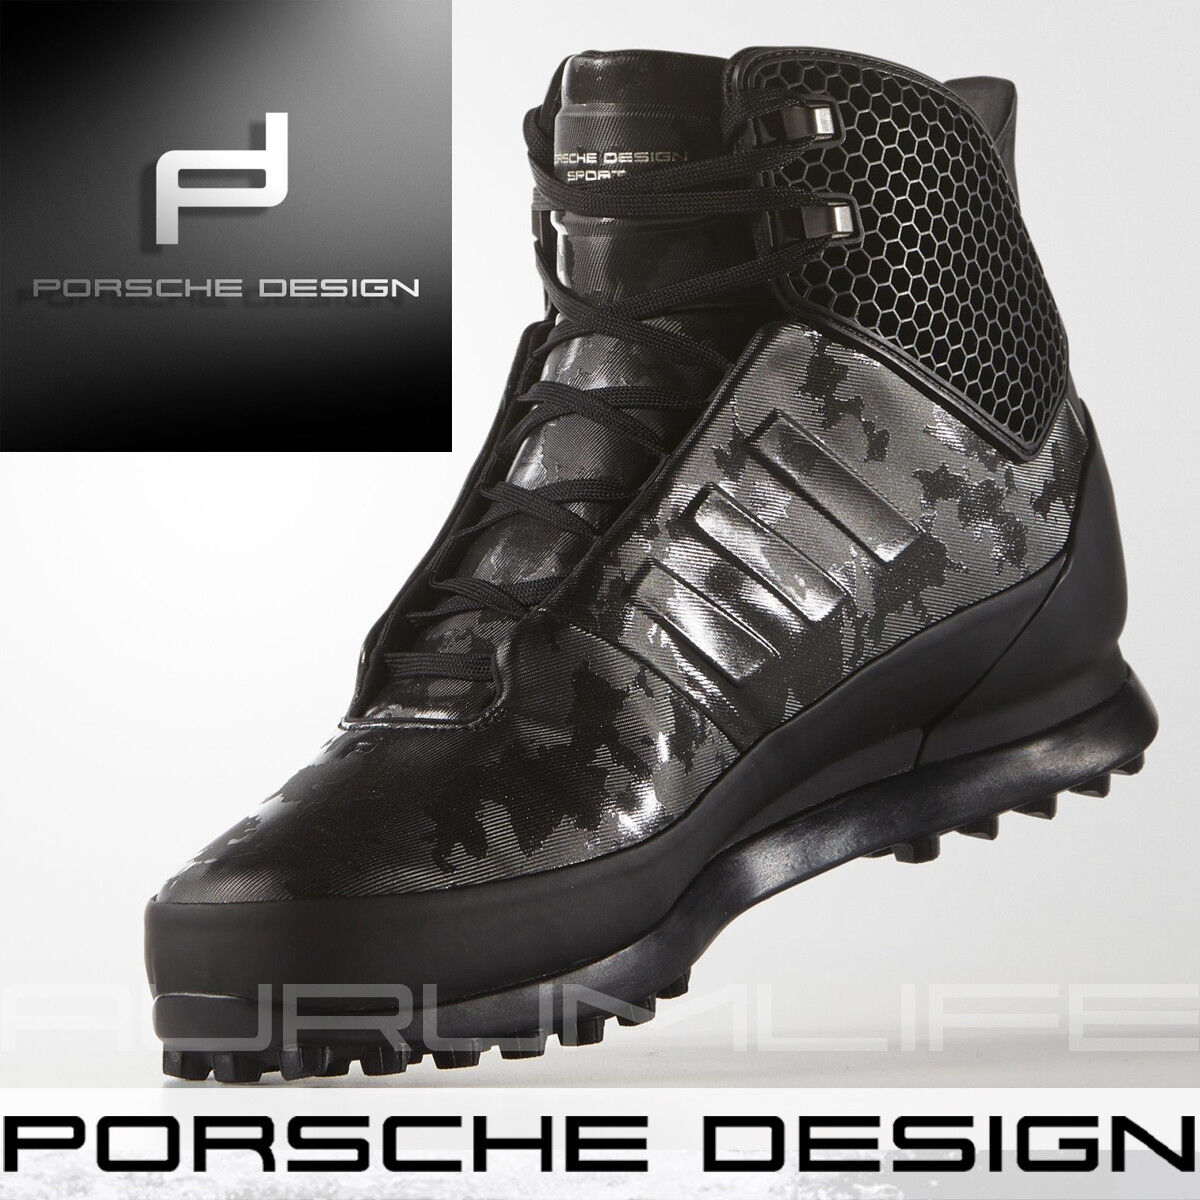 Adidas Porsche Design shoes Mens Winter Snow Bounce Tech Black Boot Size AQ3561